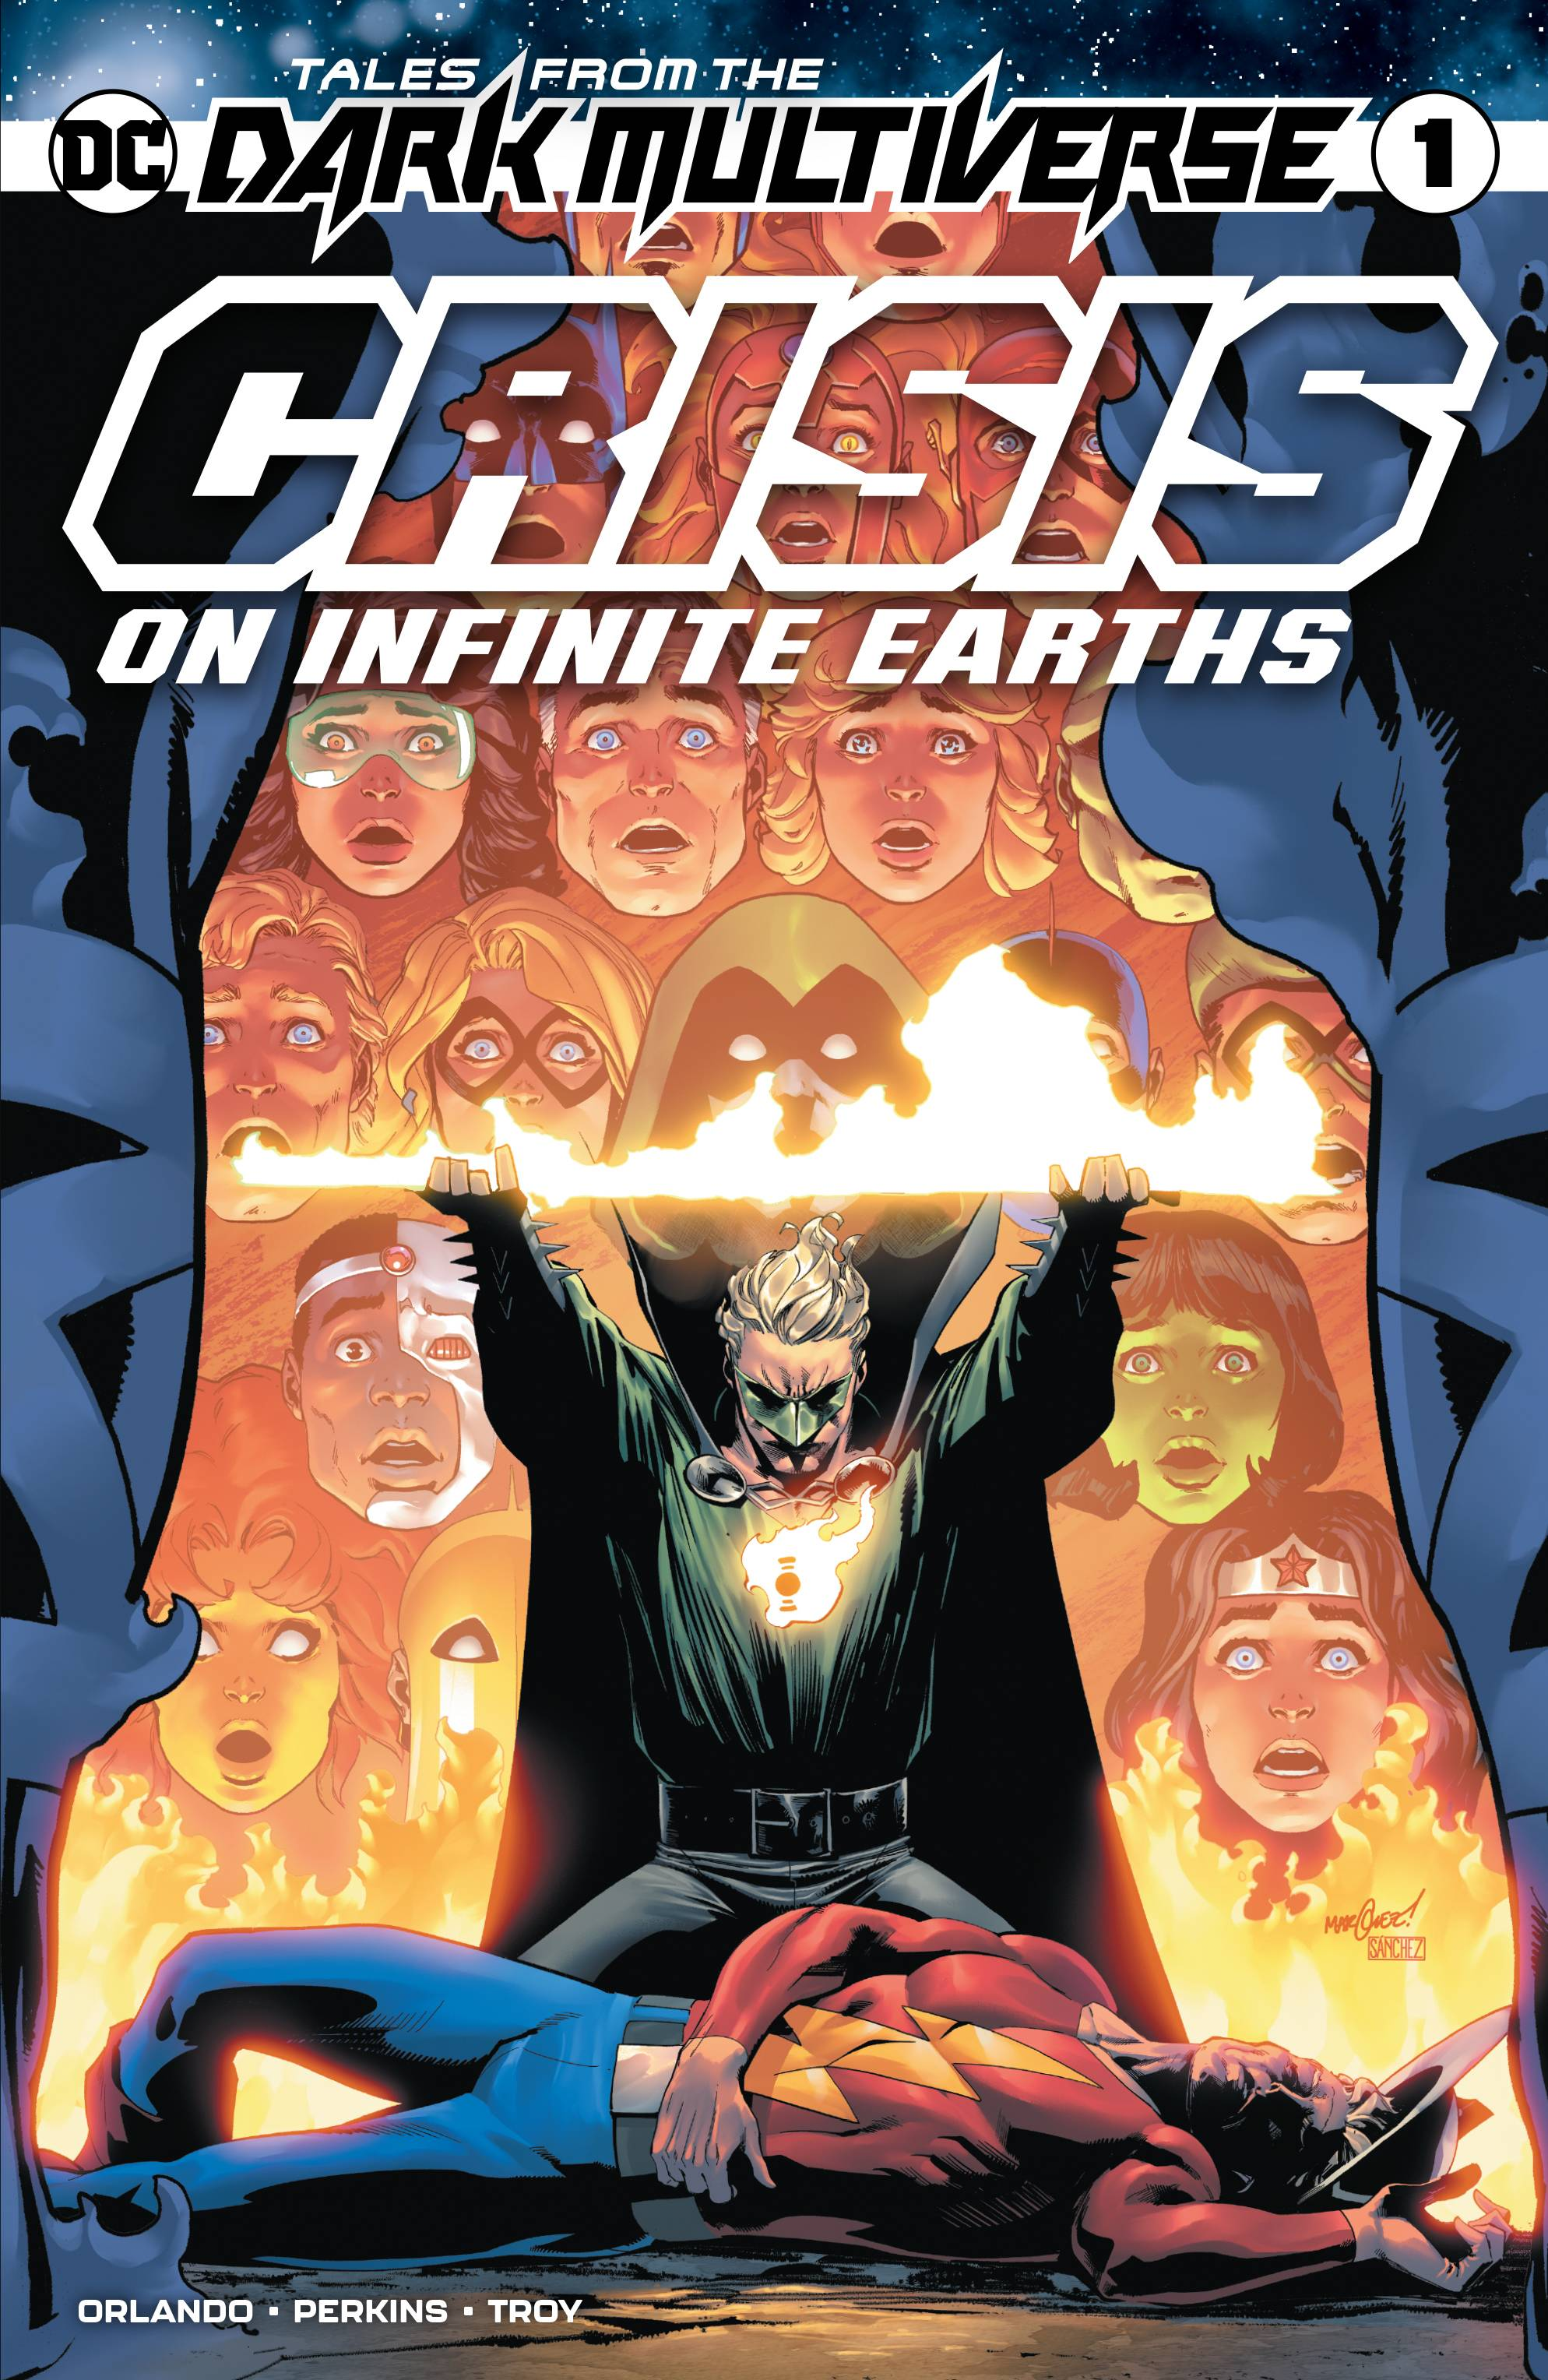 TALES OF THE DARK MULTIVERSE CRISIS ON INFINITE EARTHS #1